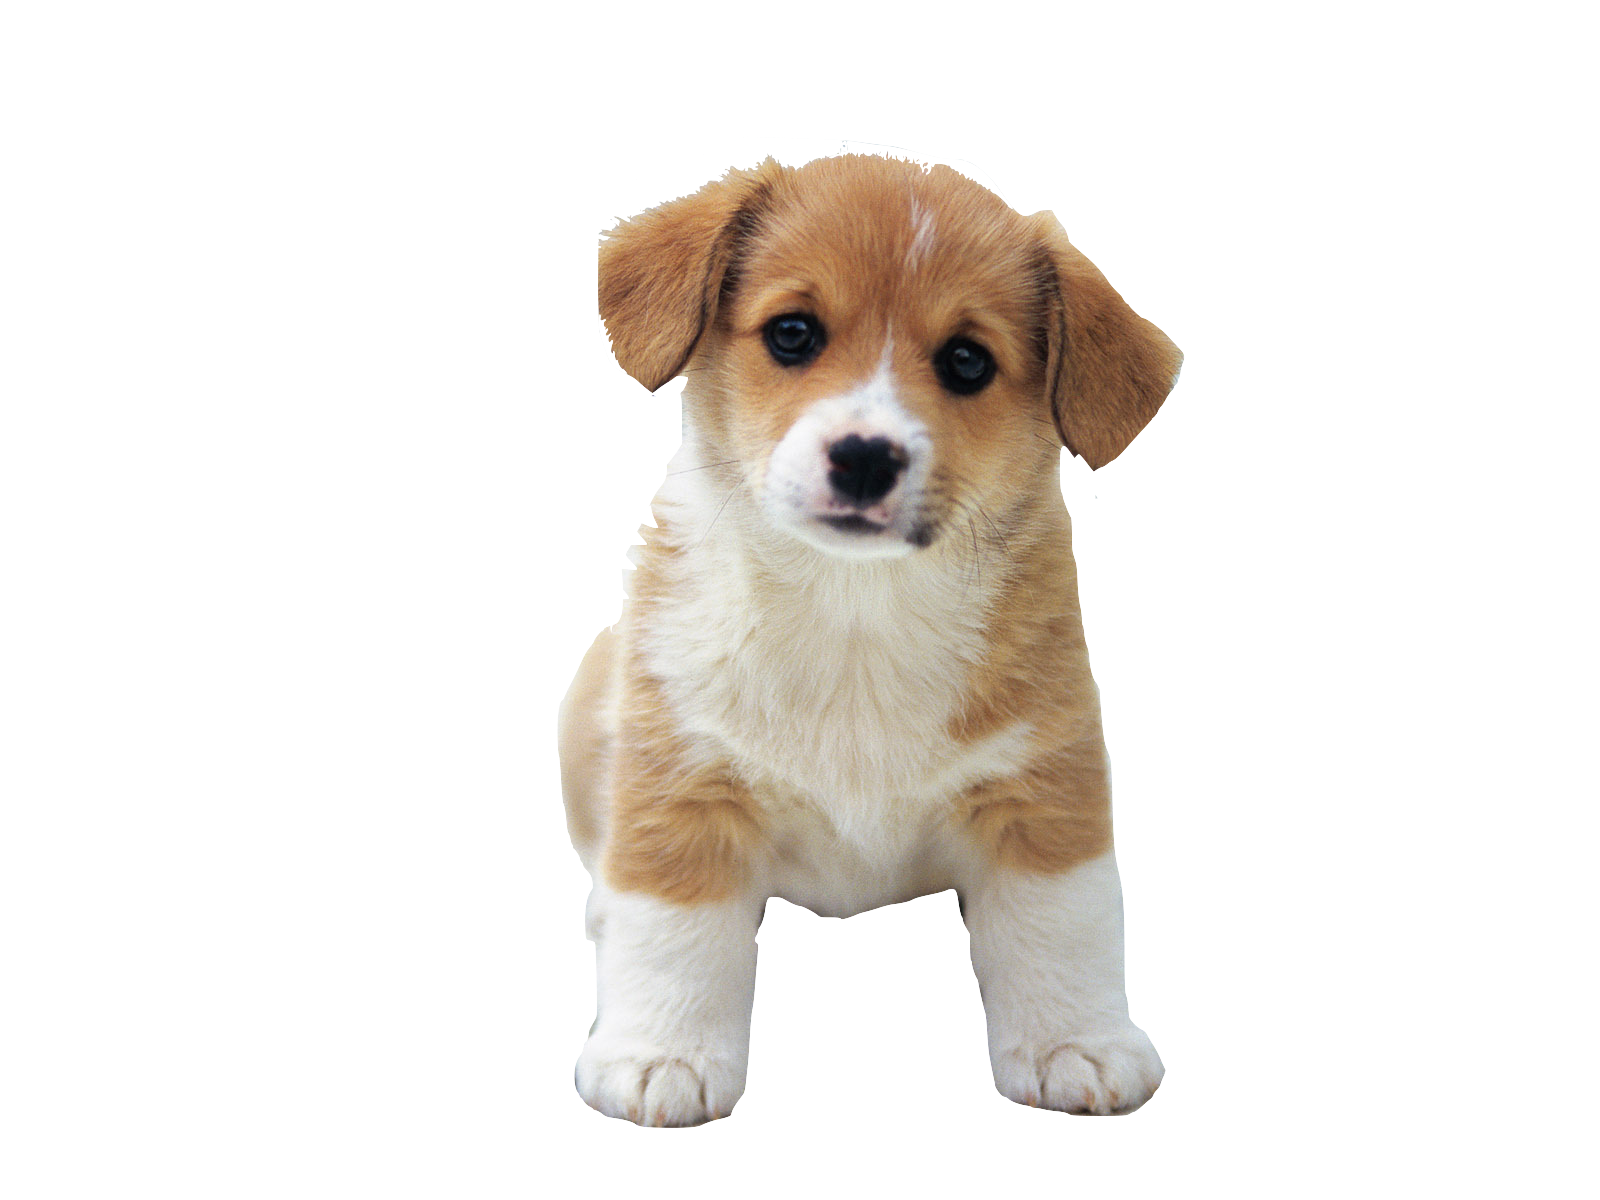 dog png cute puppies images clkerm vector clip #11311